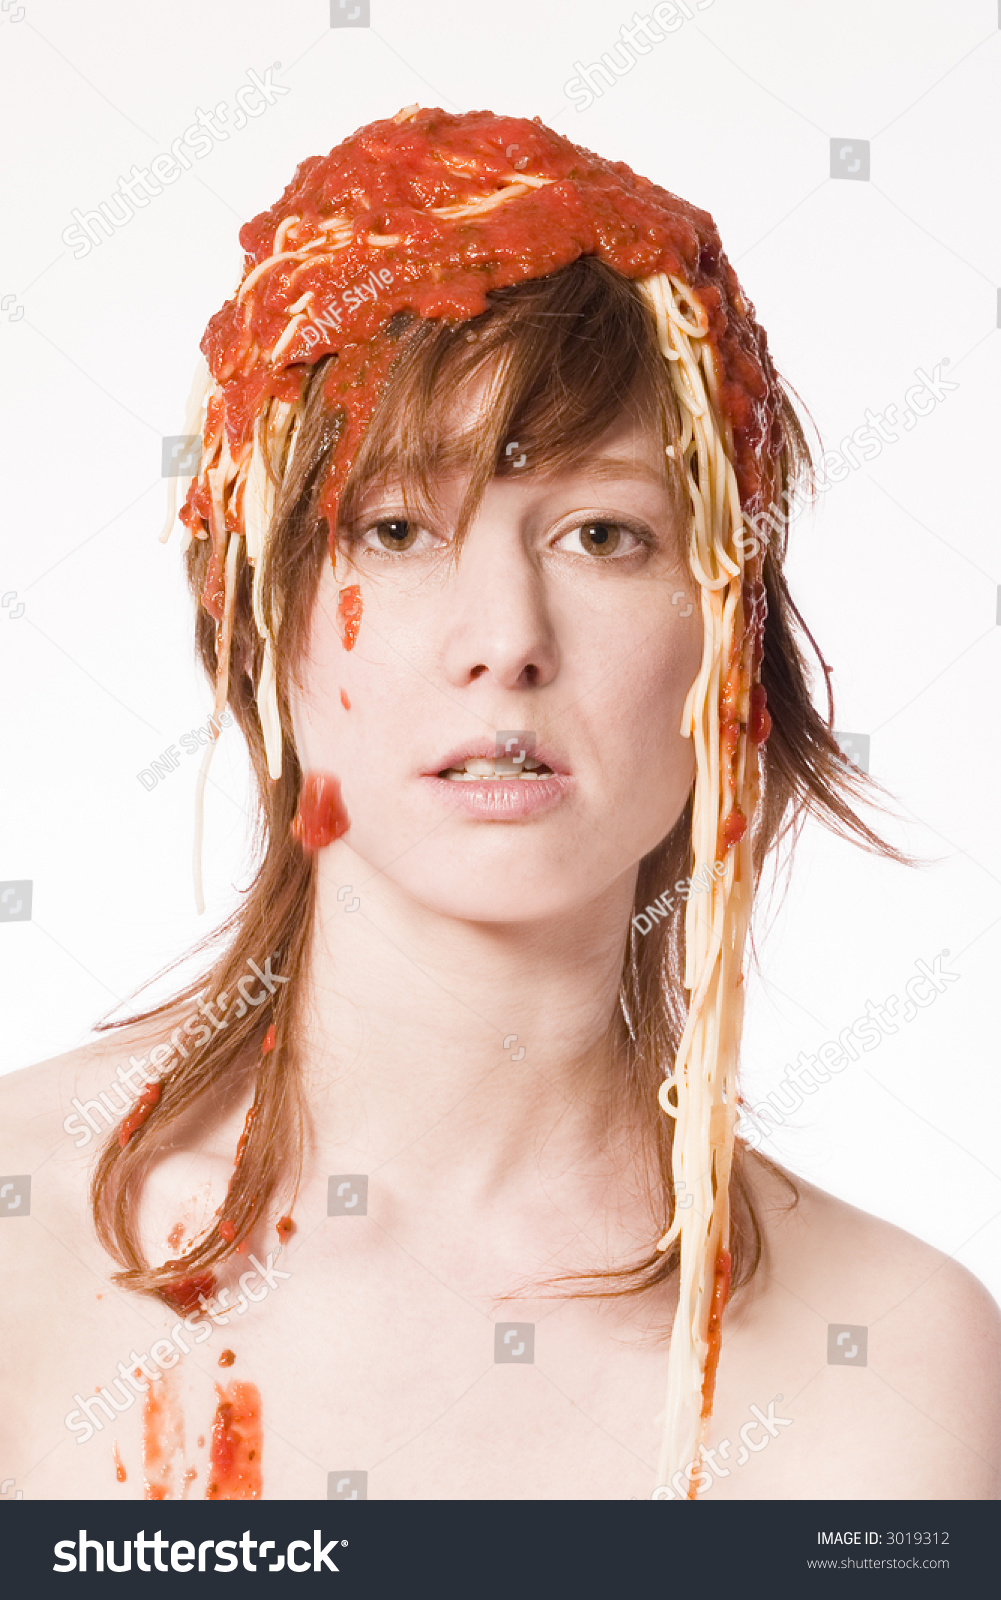 Red Haired Girl With A Meal Of Spaghetti On Her Head Stock ...